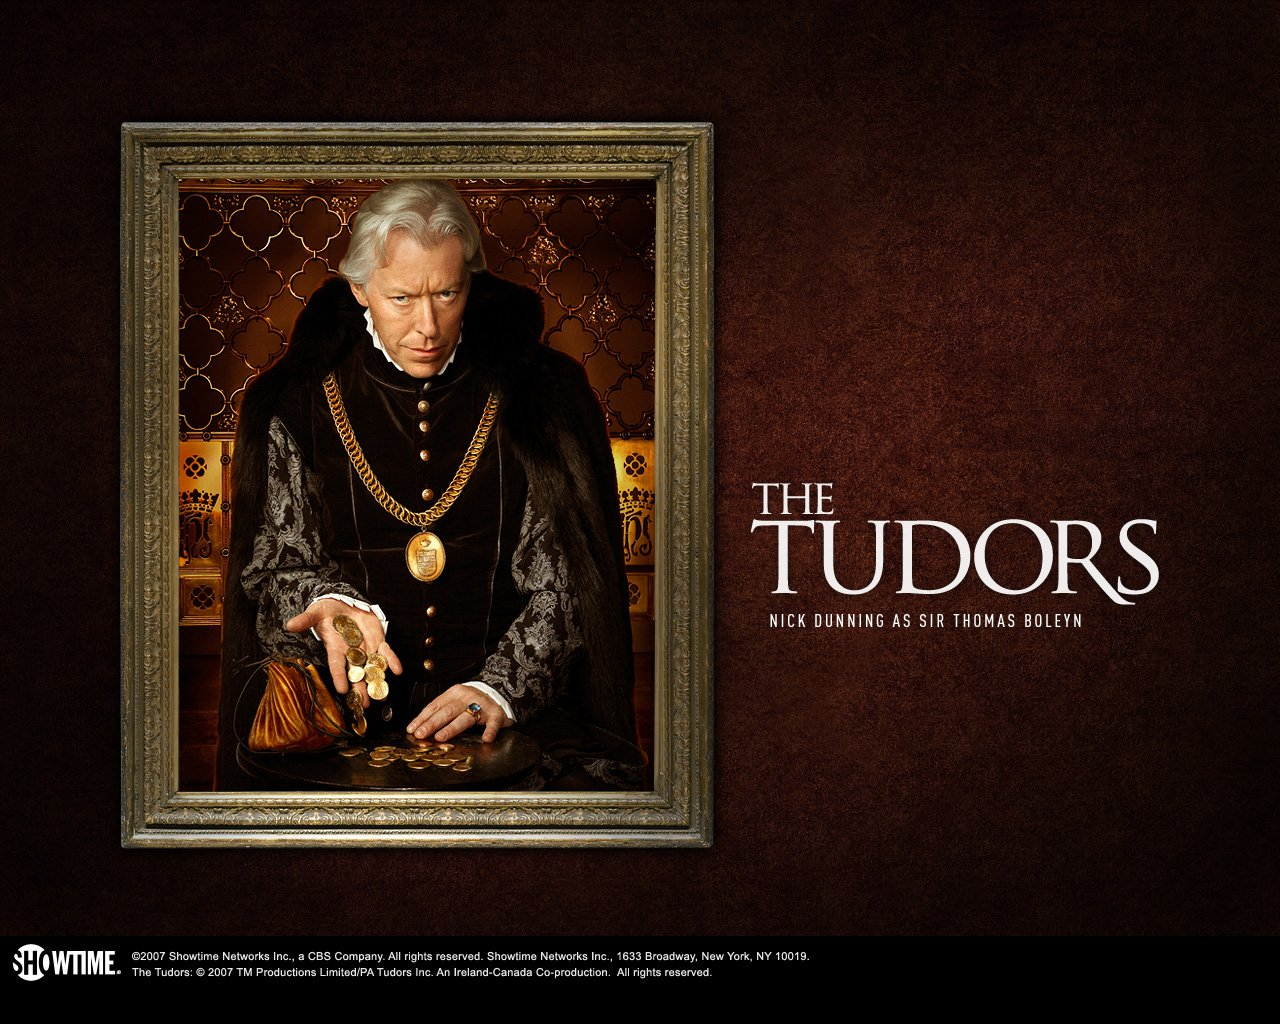 78+] The Tudors Wallpaper on WallpaperSafari